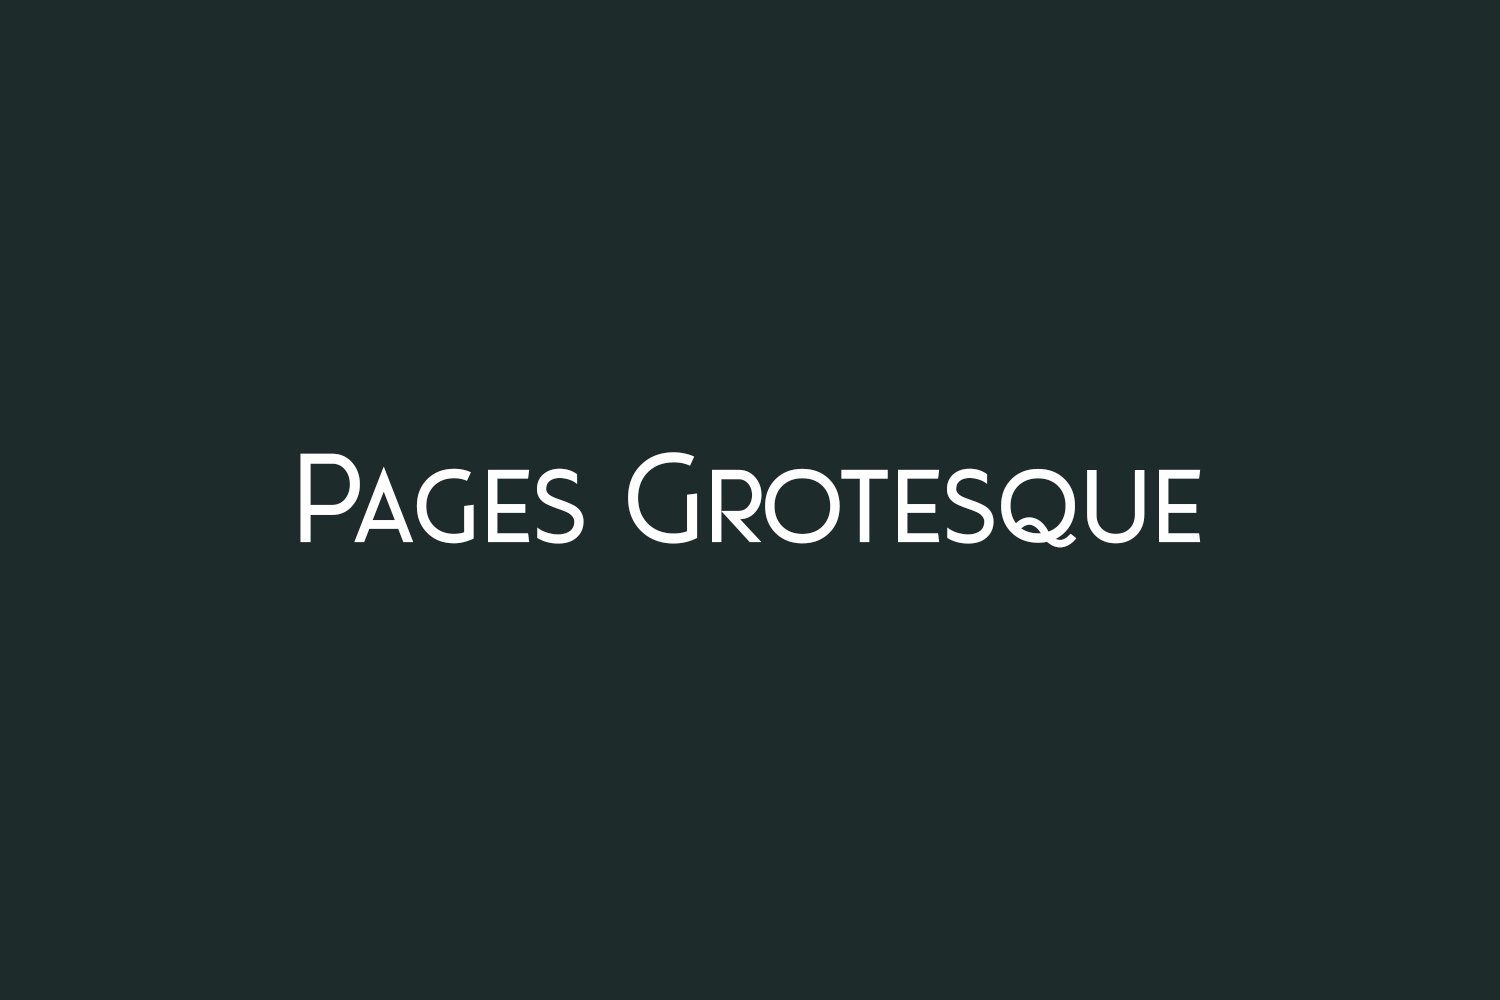 Pages Grotesque Free Font